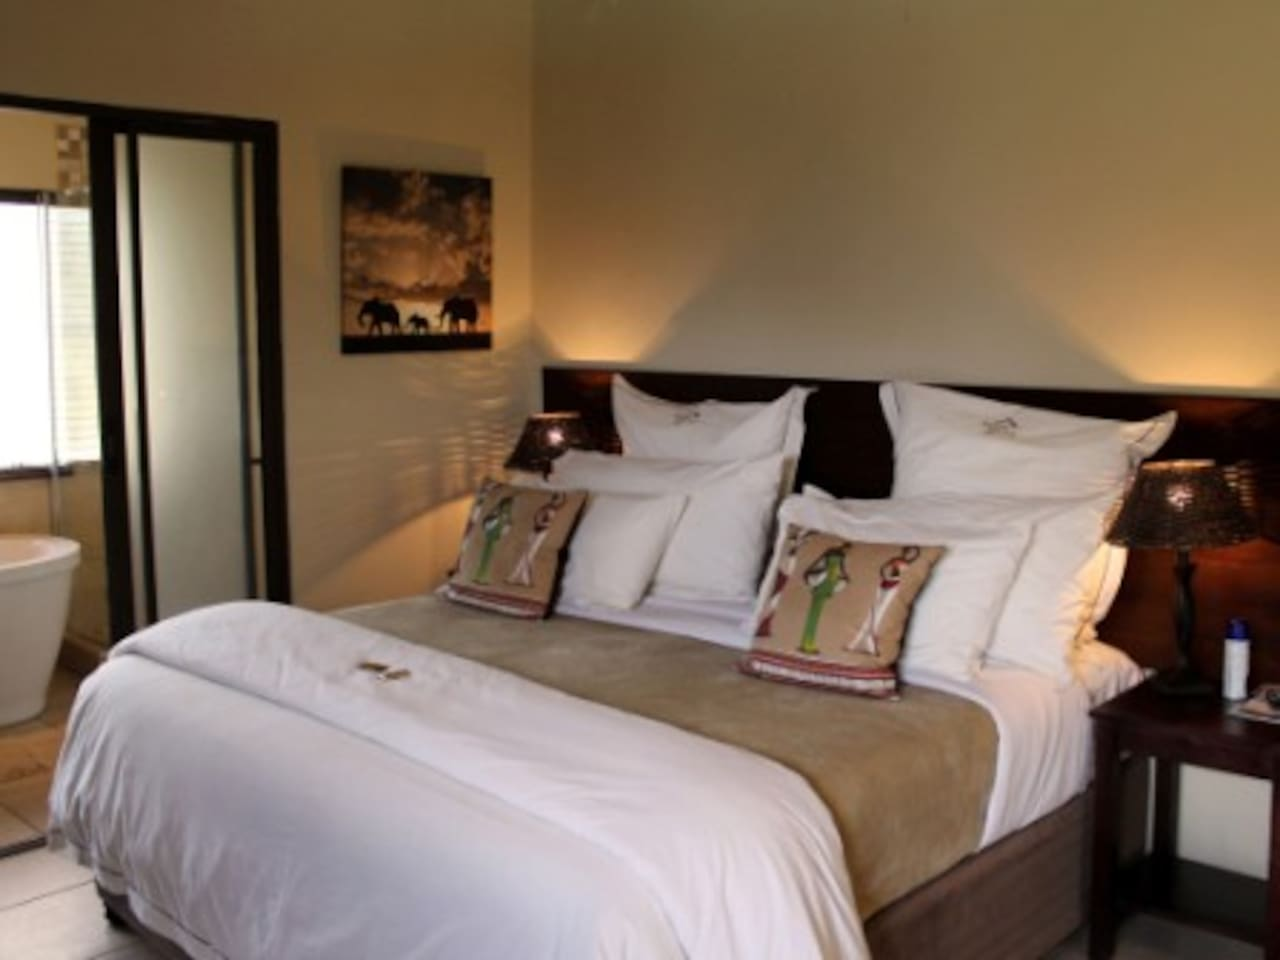 With it's luxurious king-sized bed, stone fireplace and balcony the Bushwillow Luxury Suite is perfect for a romantic get-away